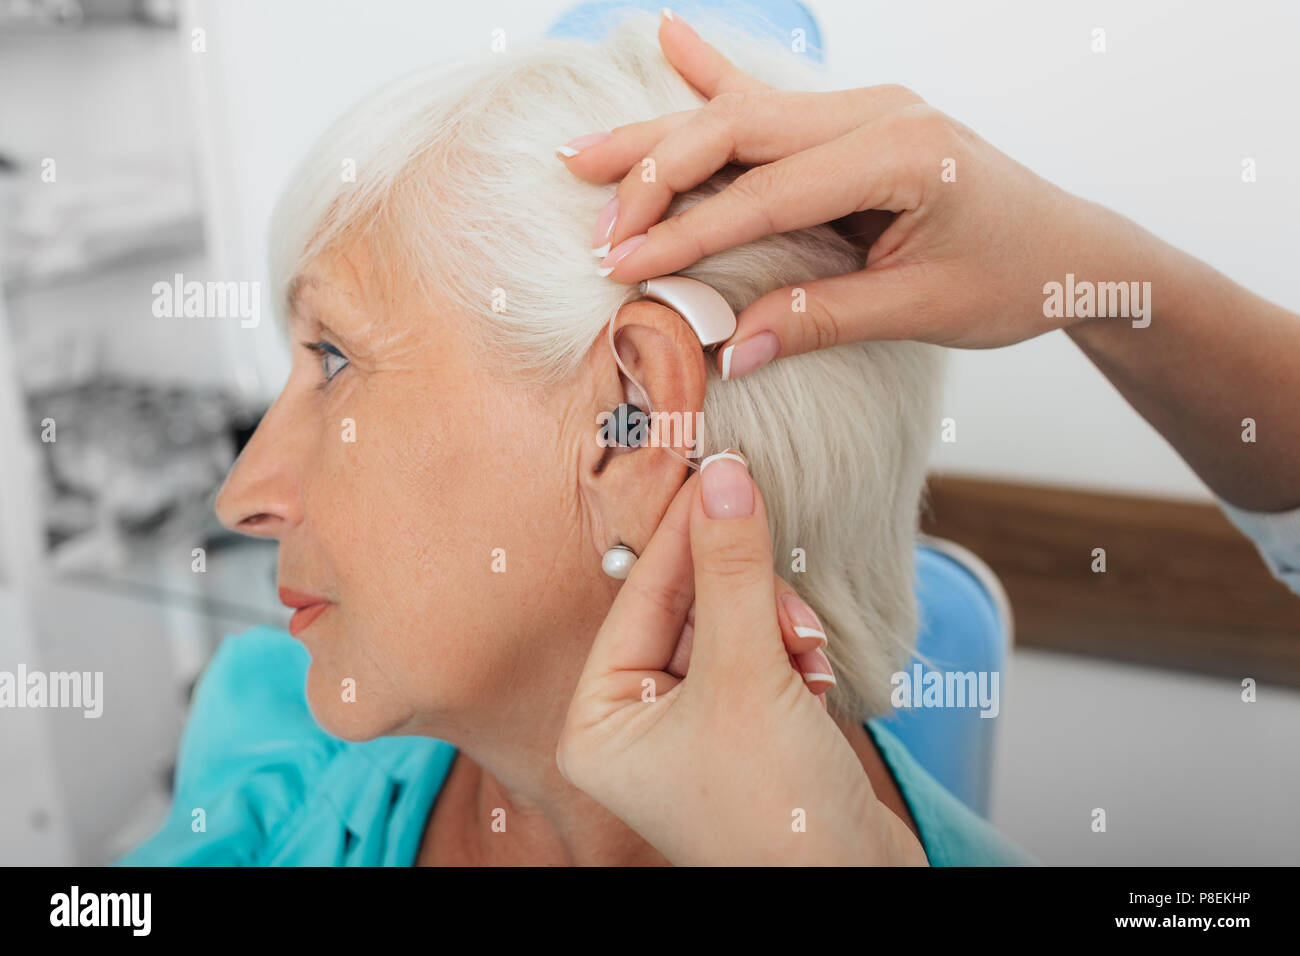 adjusting of a hearing aid for an elderly woman - Stock Image